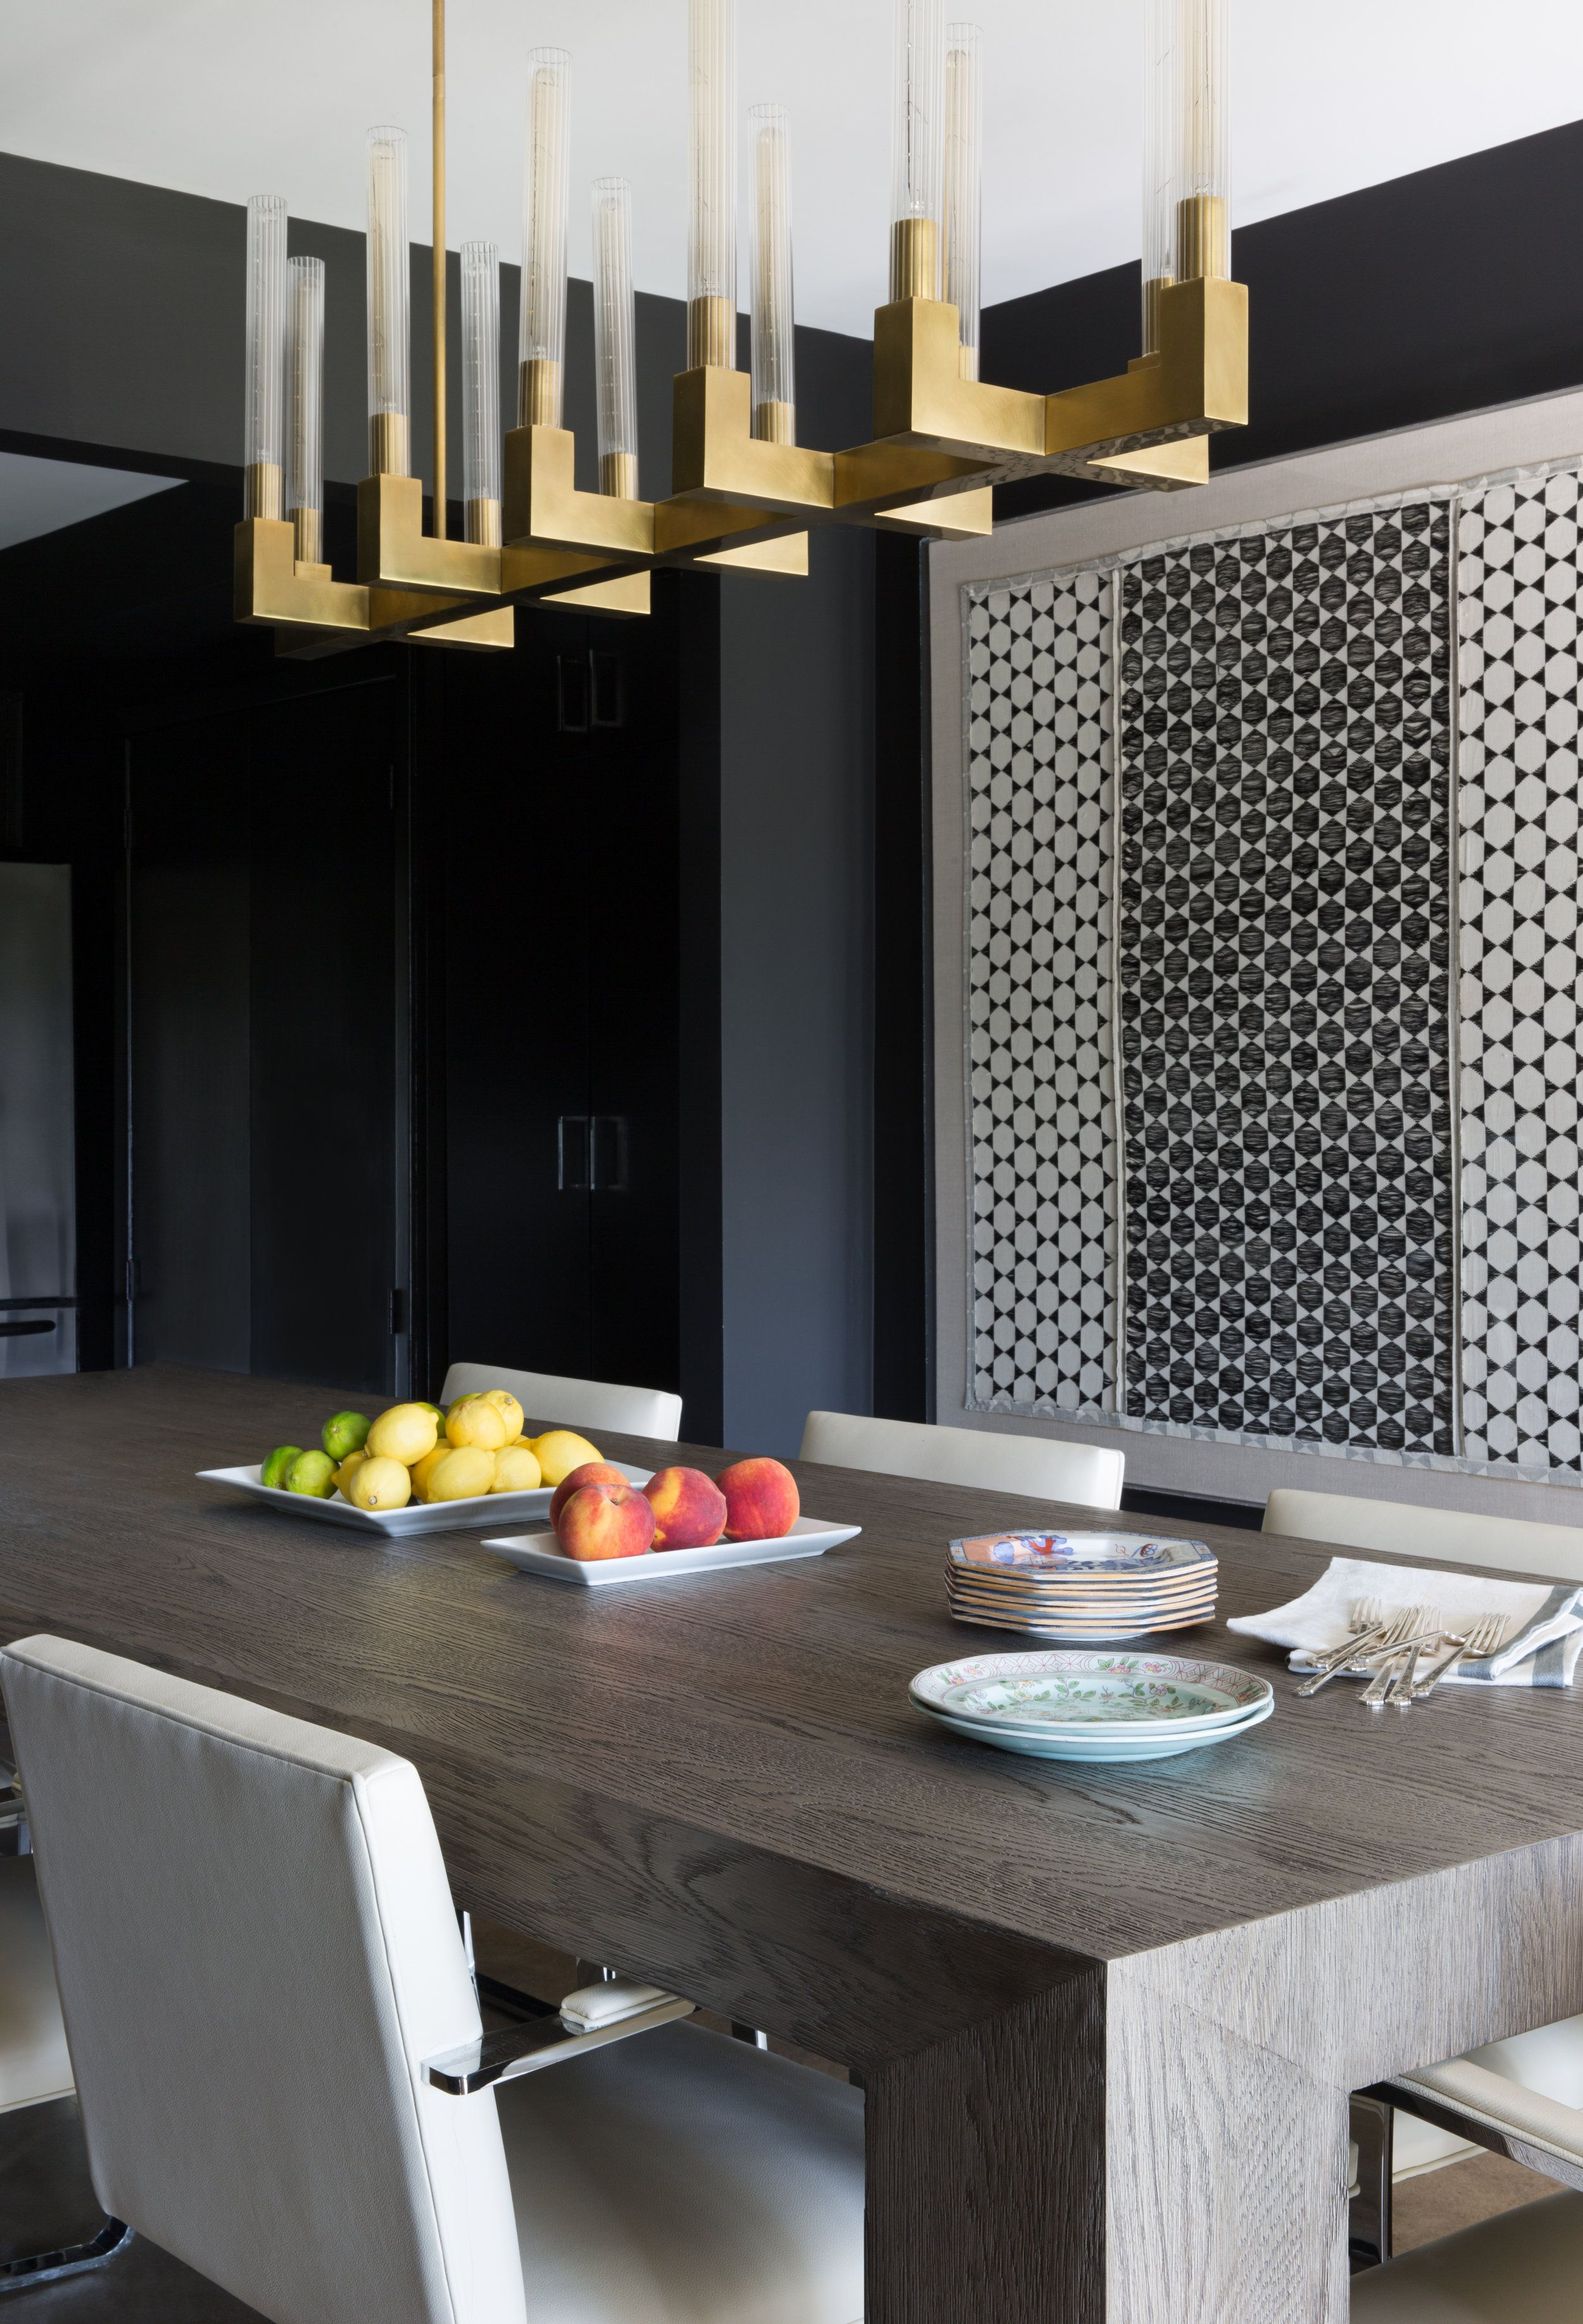 Moody Modern Dining Room With Amazing Gold Light Fixture Love The Idea Of Black Walls